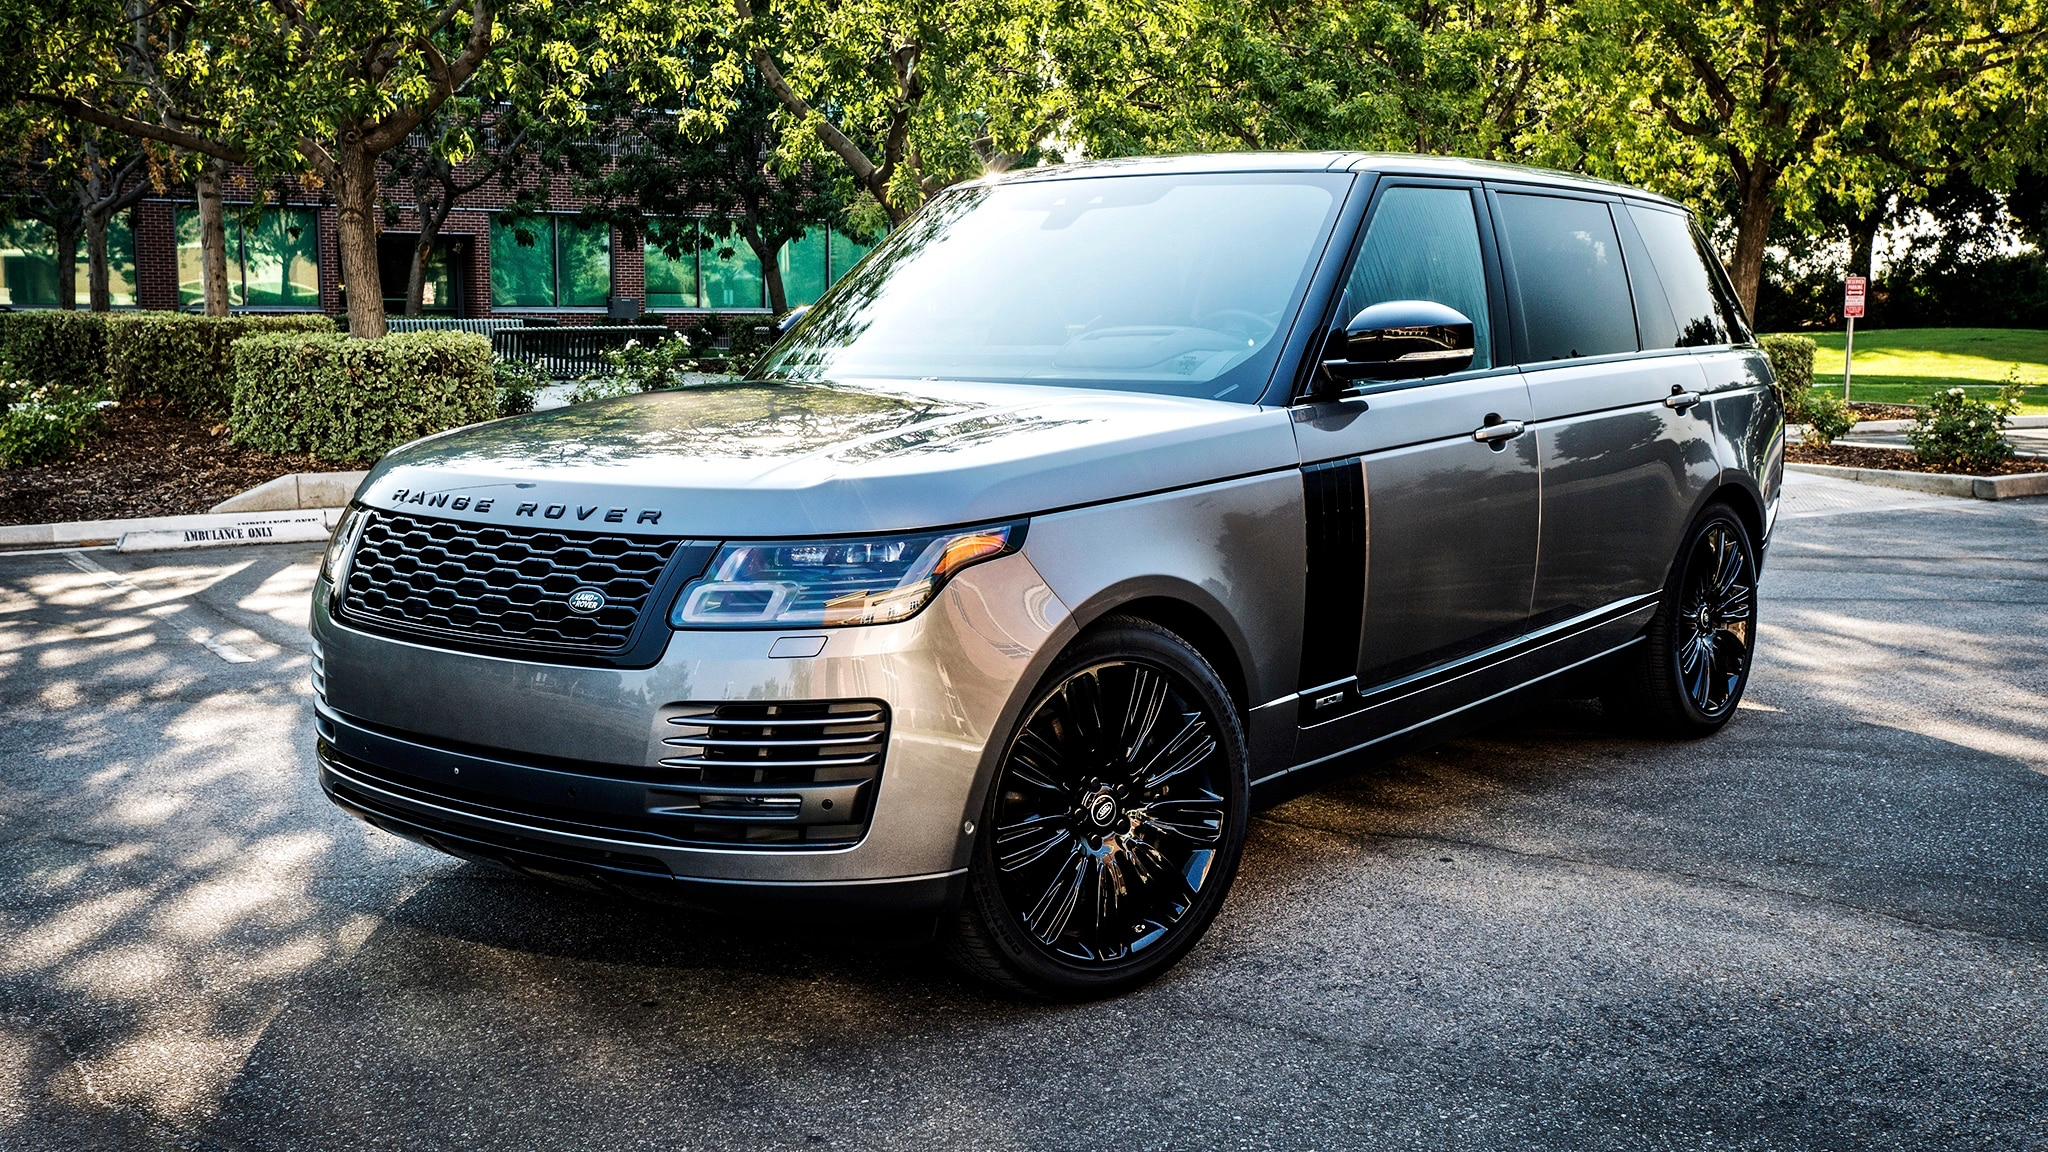 2018 Land Rover Range Rover Long Wheelbase 02